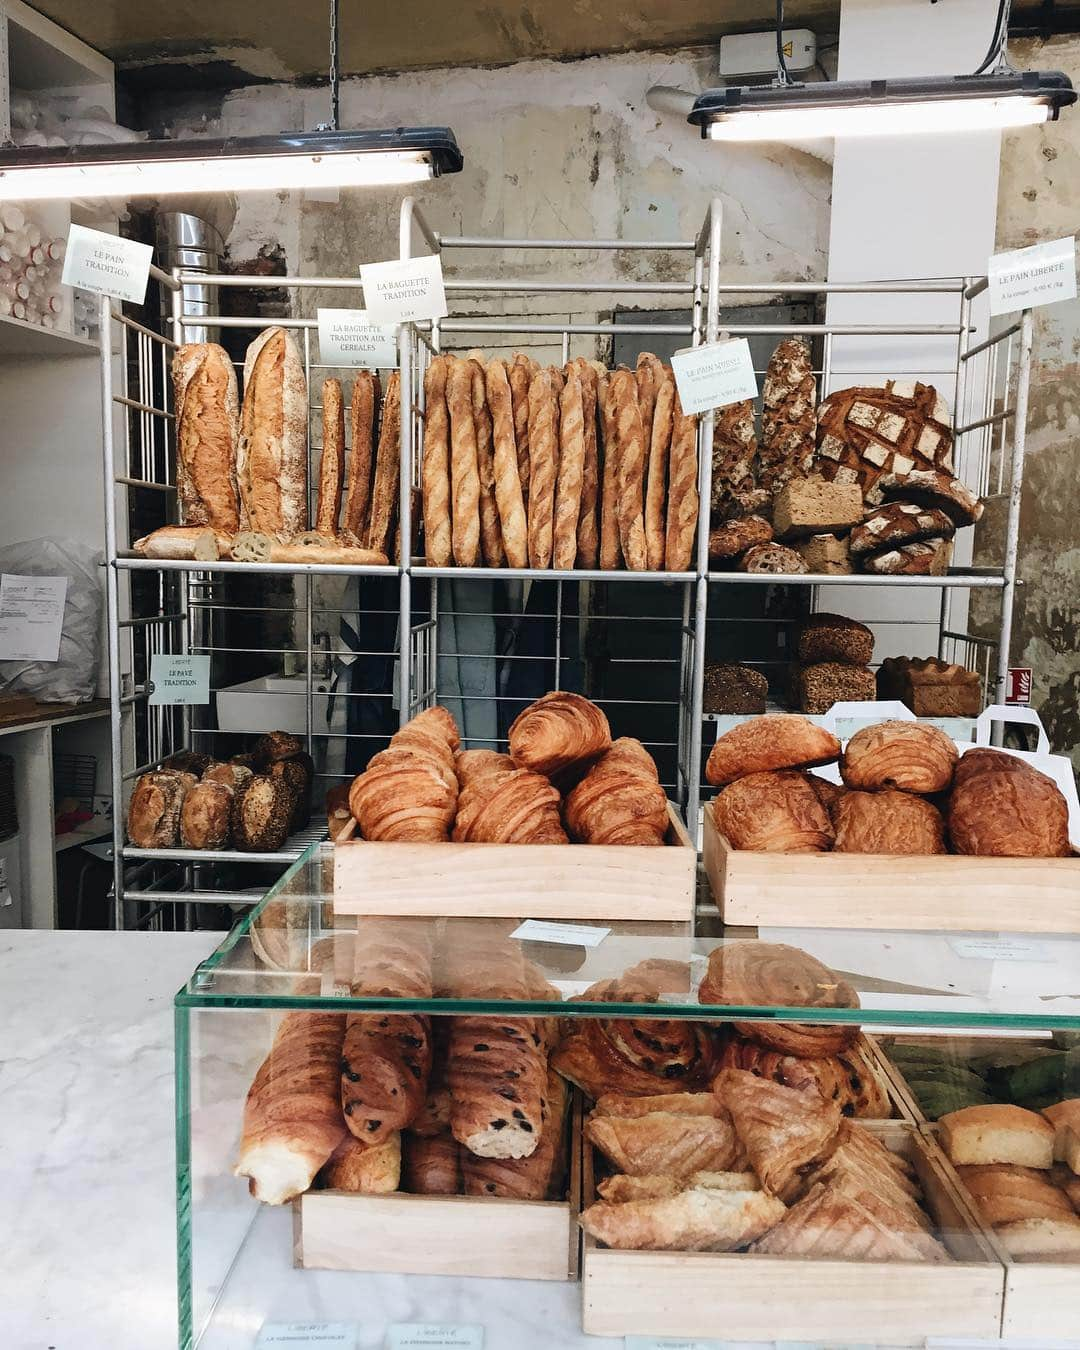 Cheap Eats in Paris - Bakeries and one euro croissants